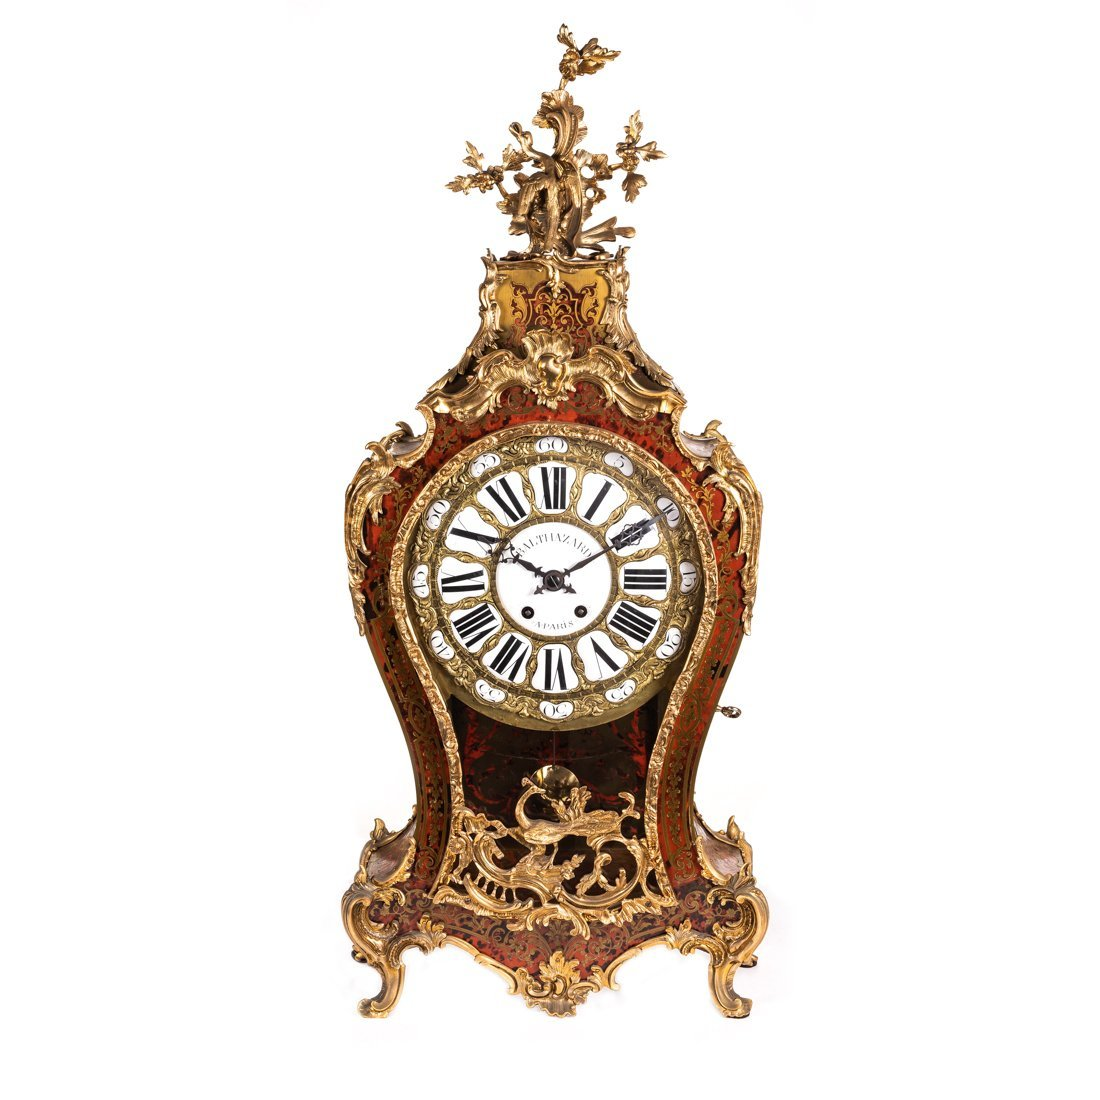 A Gilt-Bronze-Mounted Brass Inlaid Mantel Clock